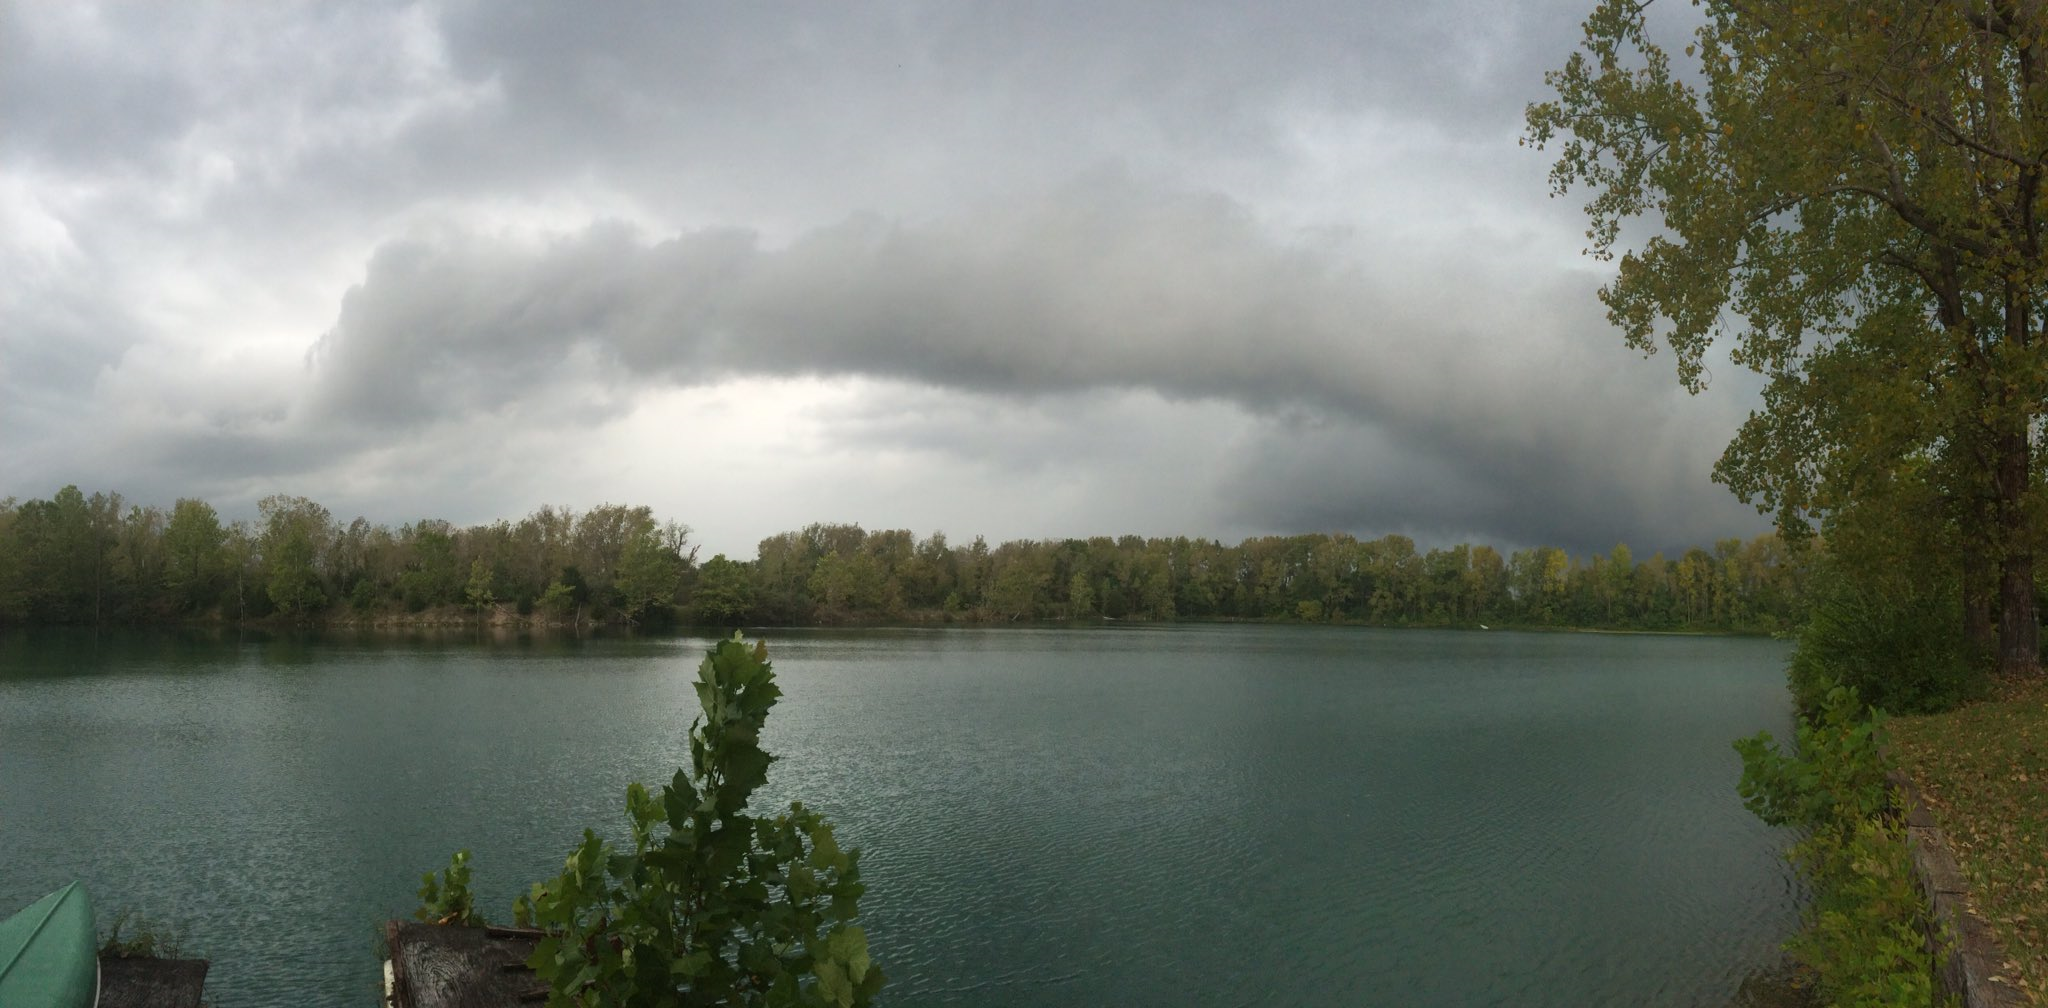 Storm clouds approach Fairland (Shelby Co) Thursday